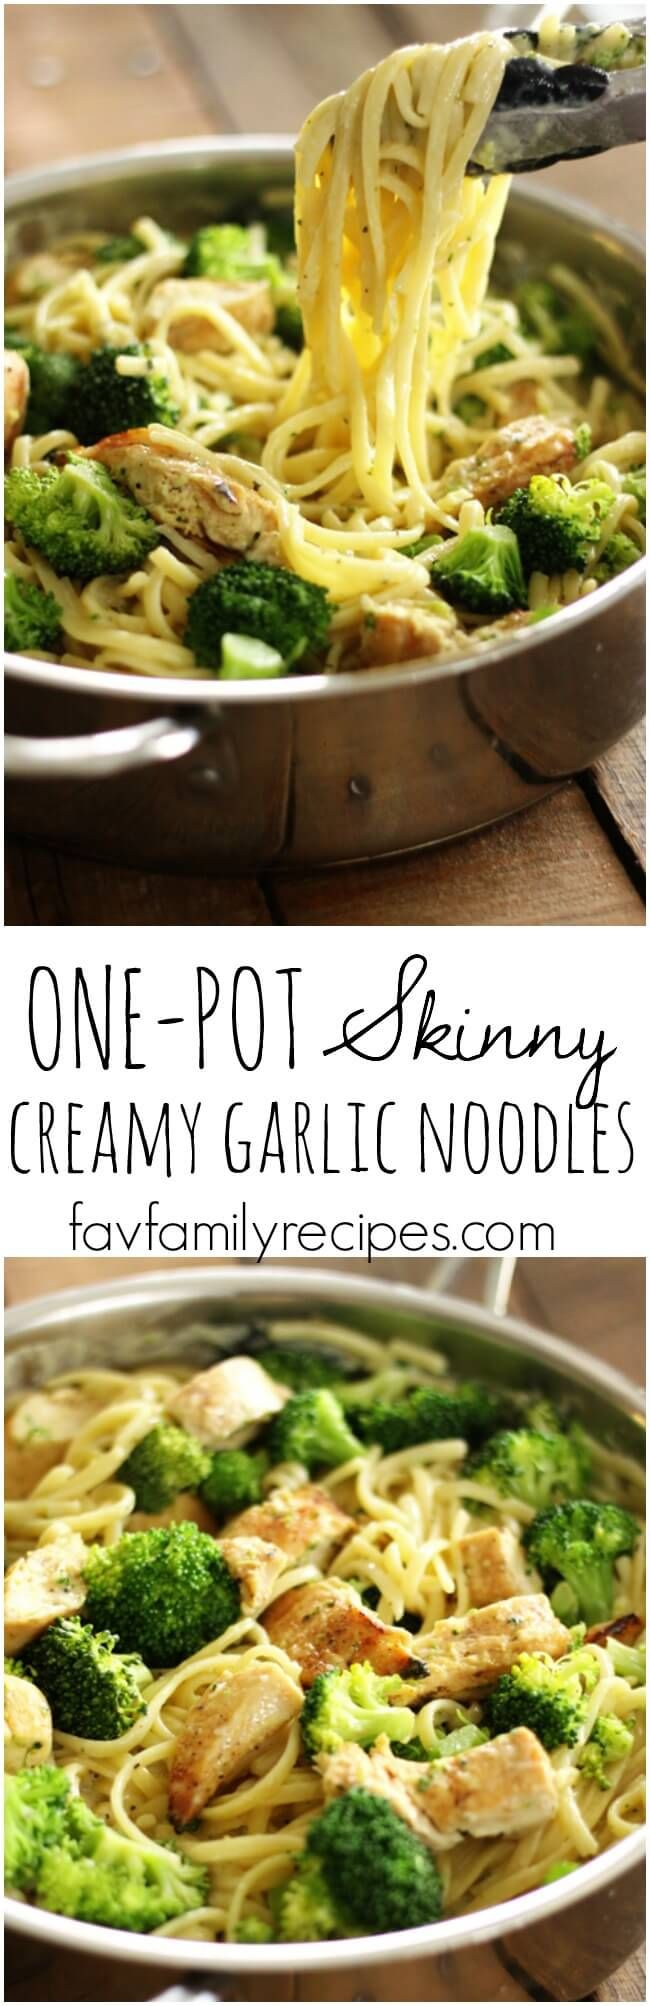 These one pot skinny creamy garlic noodles are THE BEST. My kids beg for this! No heavy creams or large amounts of butter, yet they are delicious!